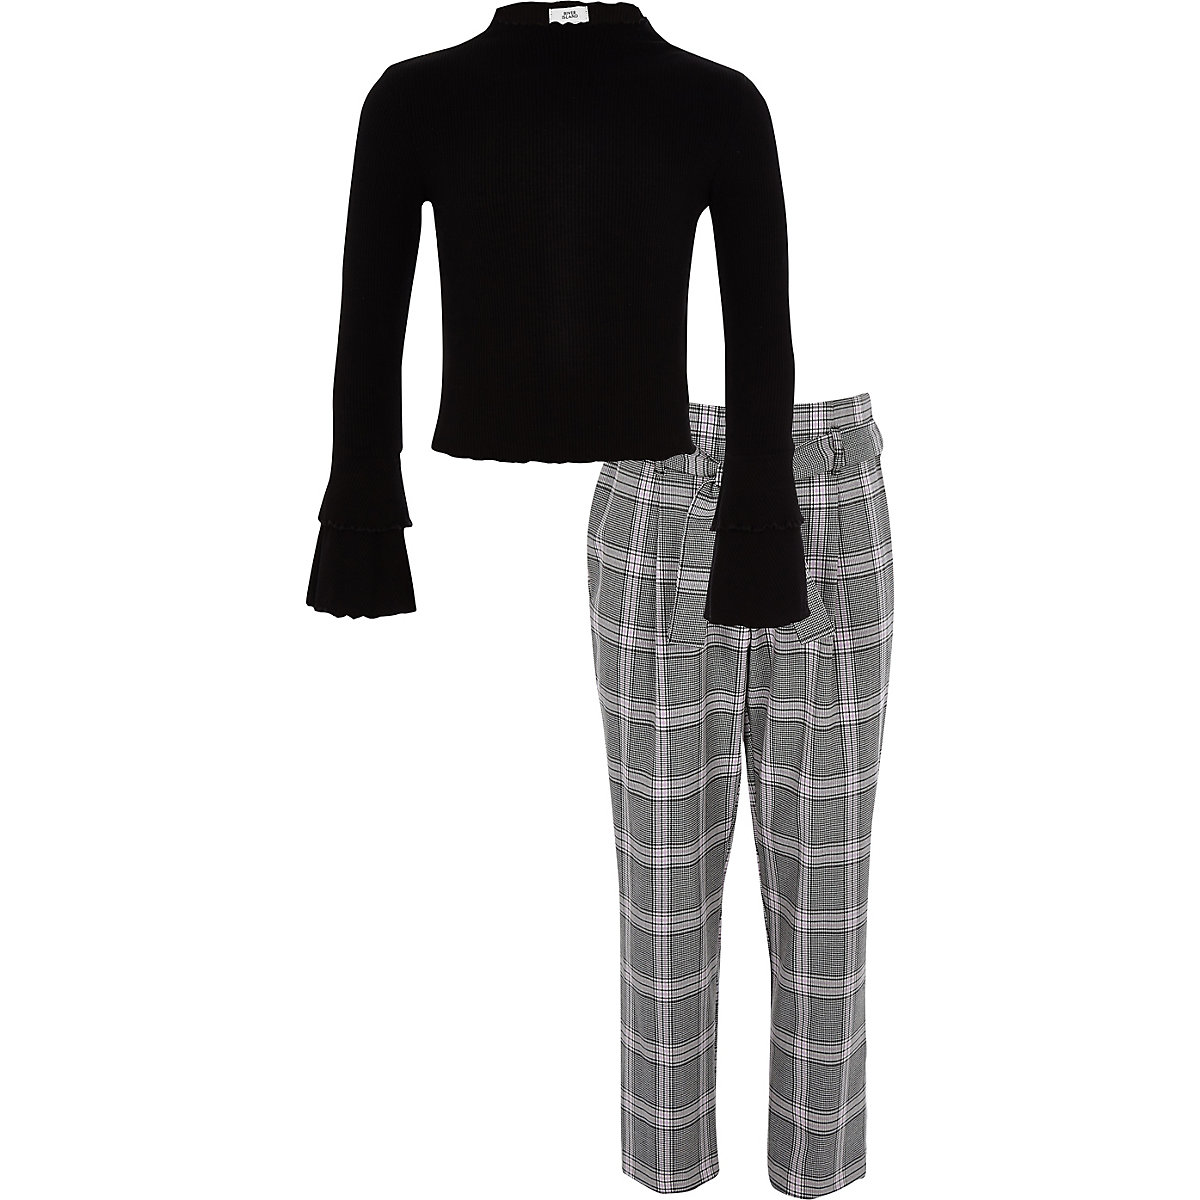 Girls black rib top and check trousers outfit